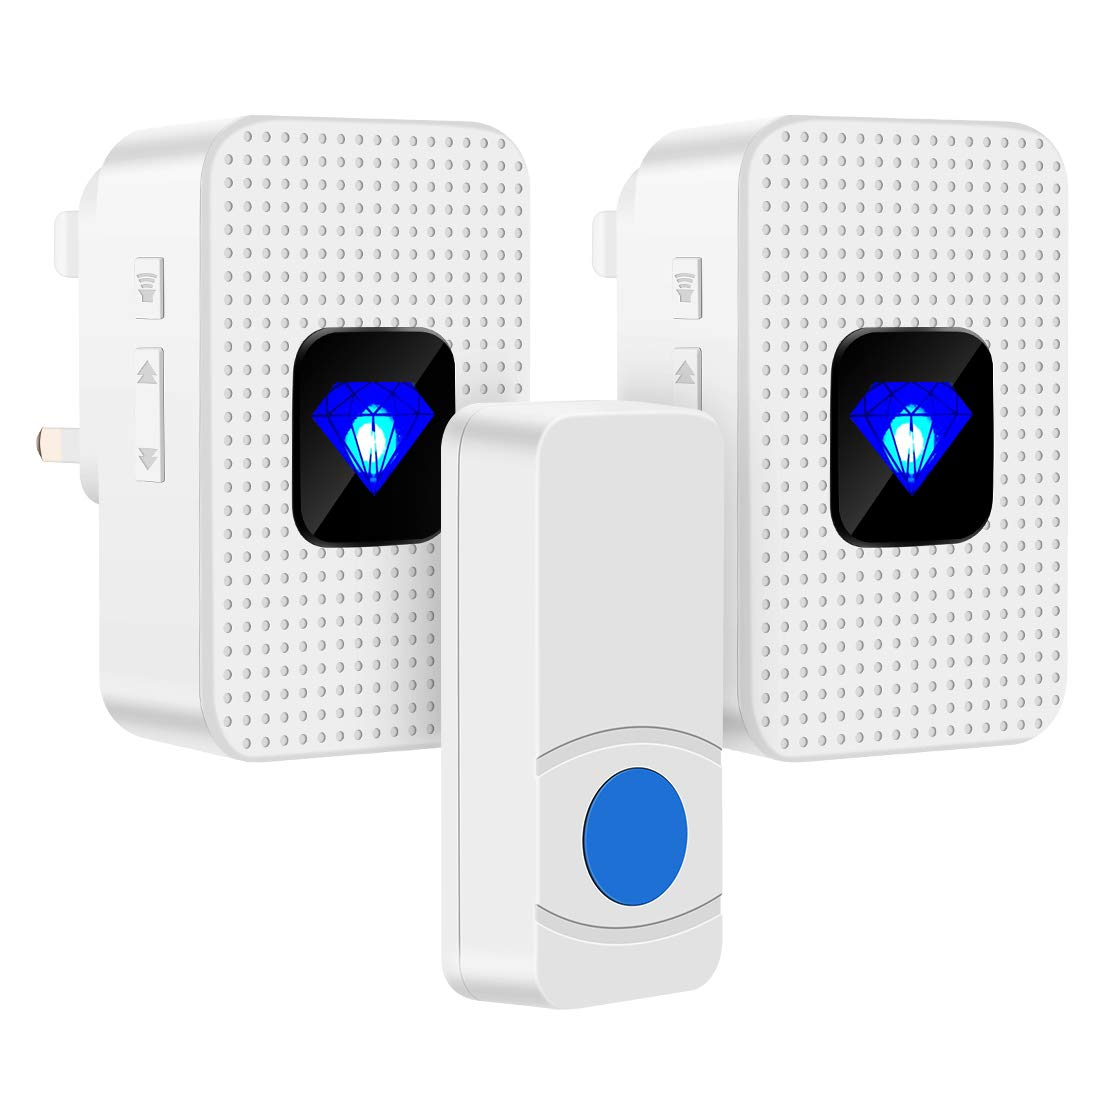 Wireless Doorbell Plug in 2 Receivers ,IP55 Waterproof Battery Door Chime Kit with 1000-Ft Range, 55 Chimes, 5-Level Volume & Blue LED Flash Light AILOVA